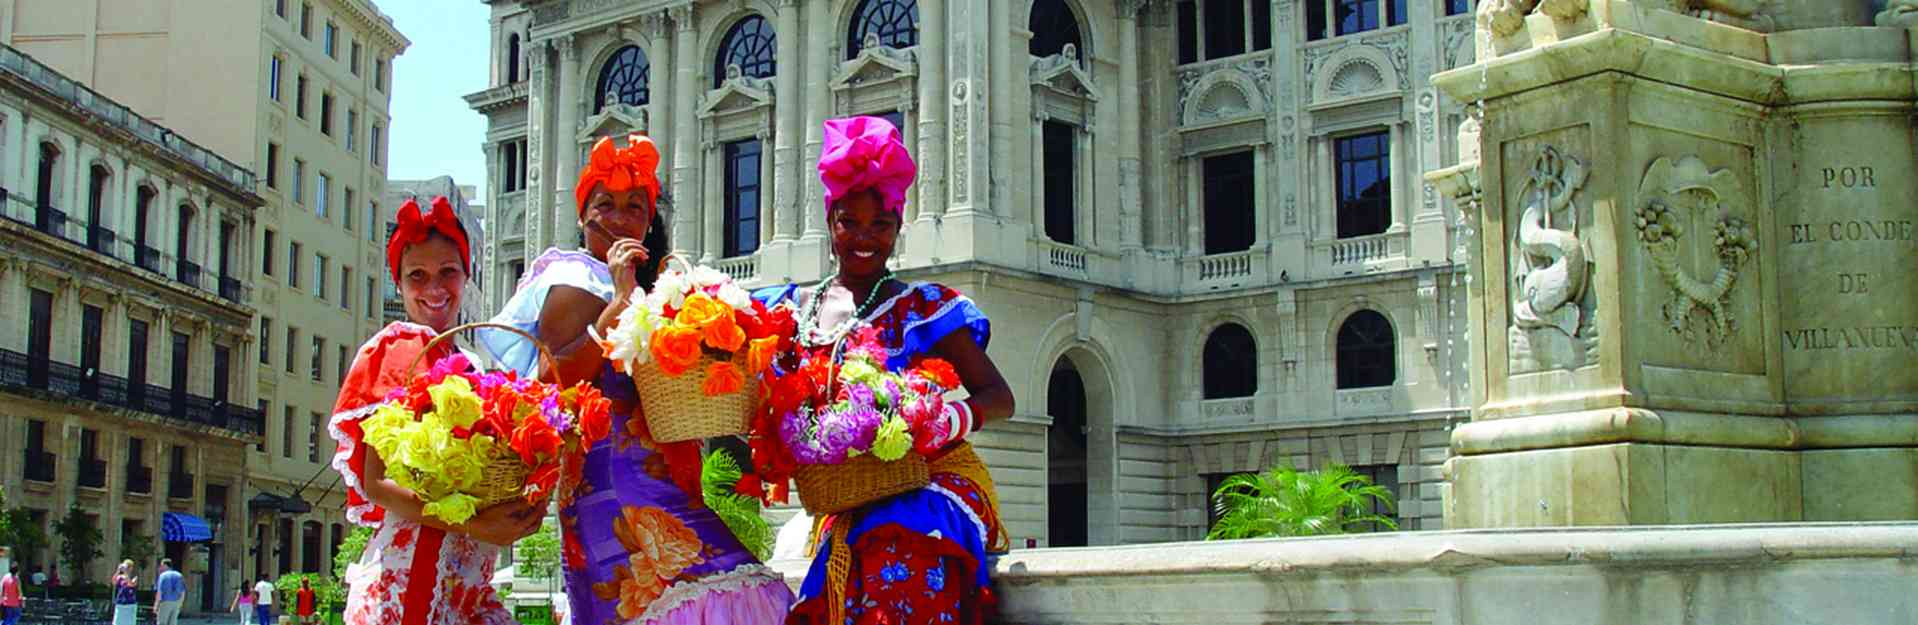 Traditions and customs, Habana Travel